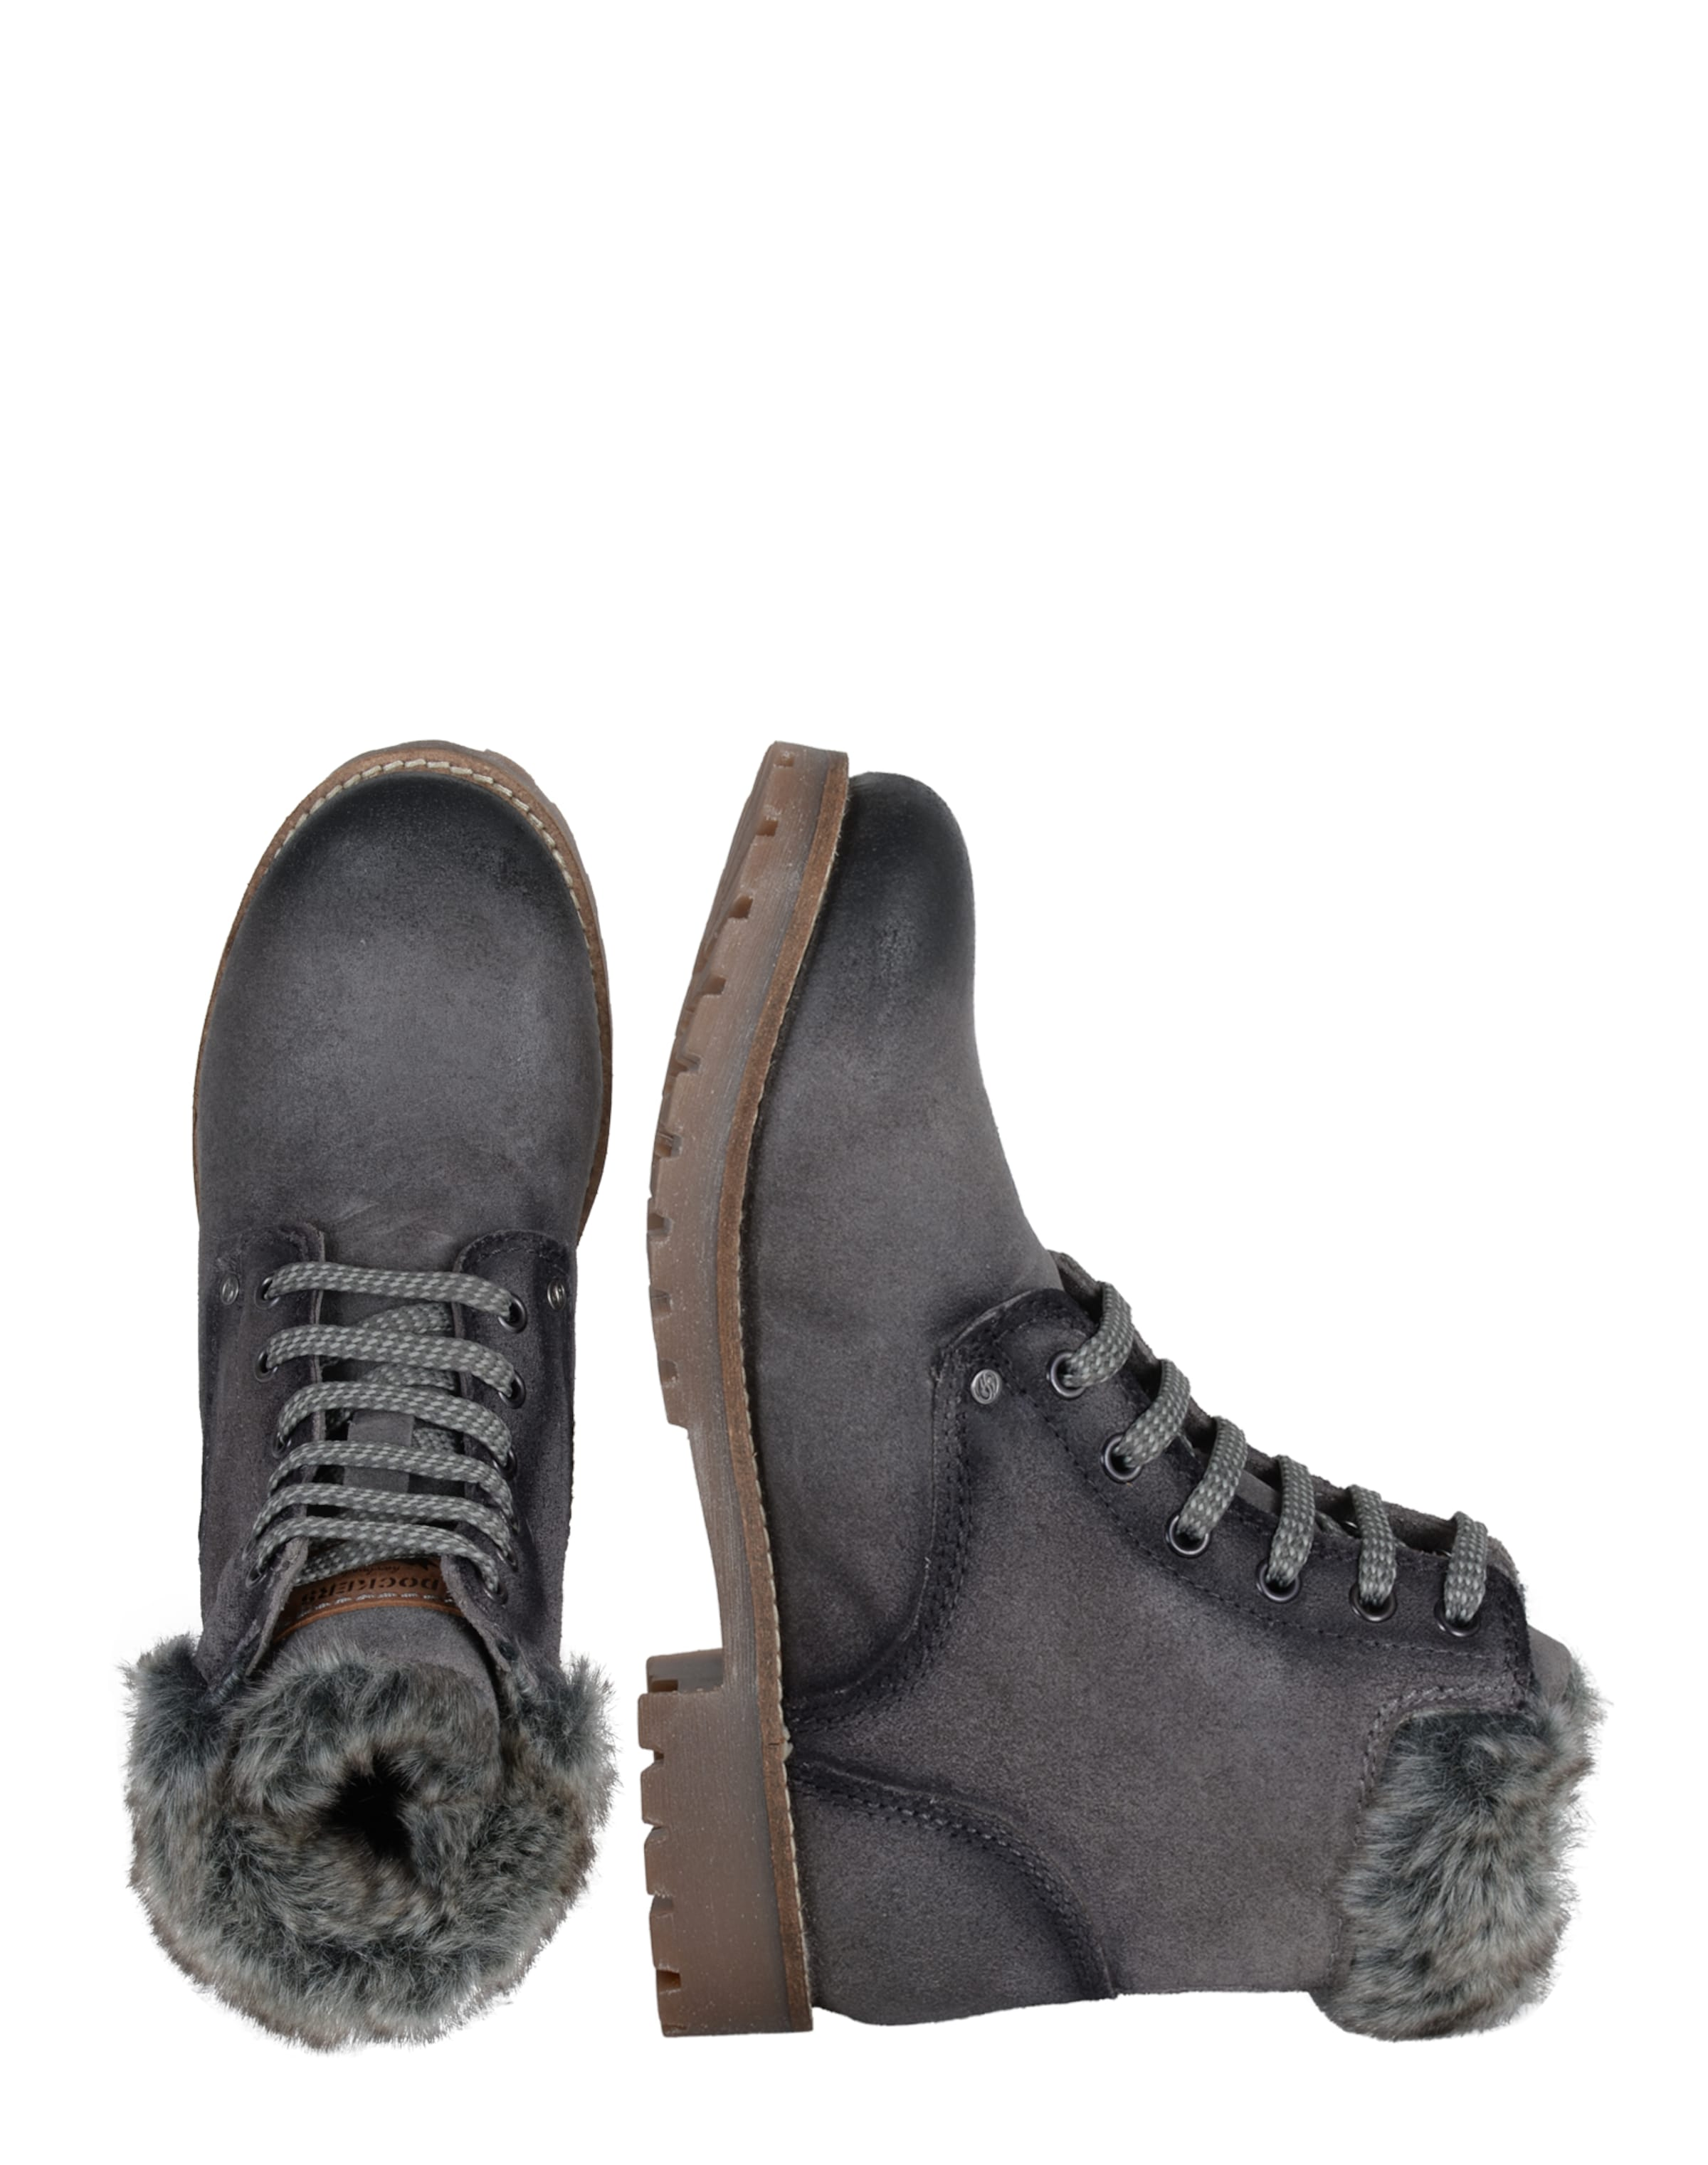 By Bottes En Dockers Gerli Lacets MarronGris À P0wONXZnk8